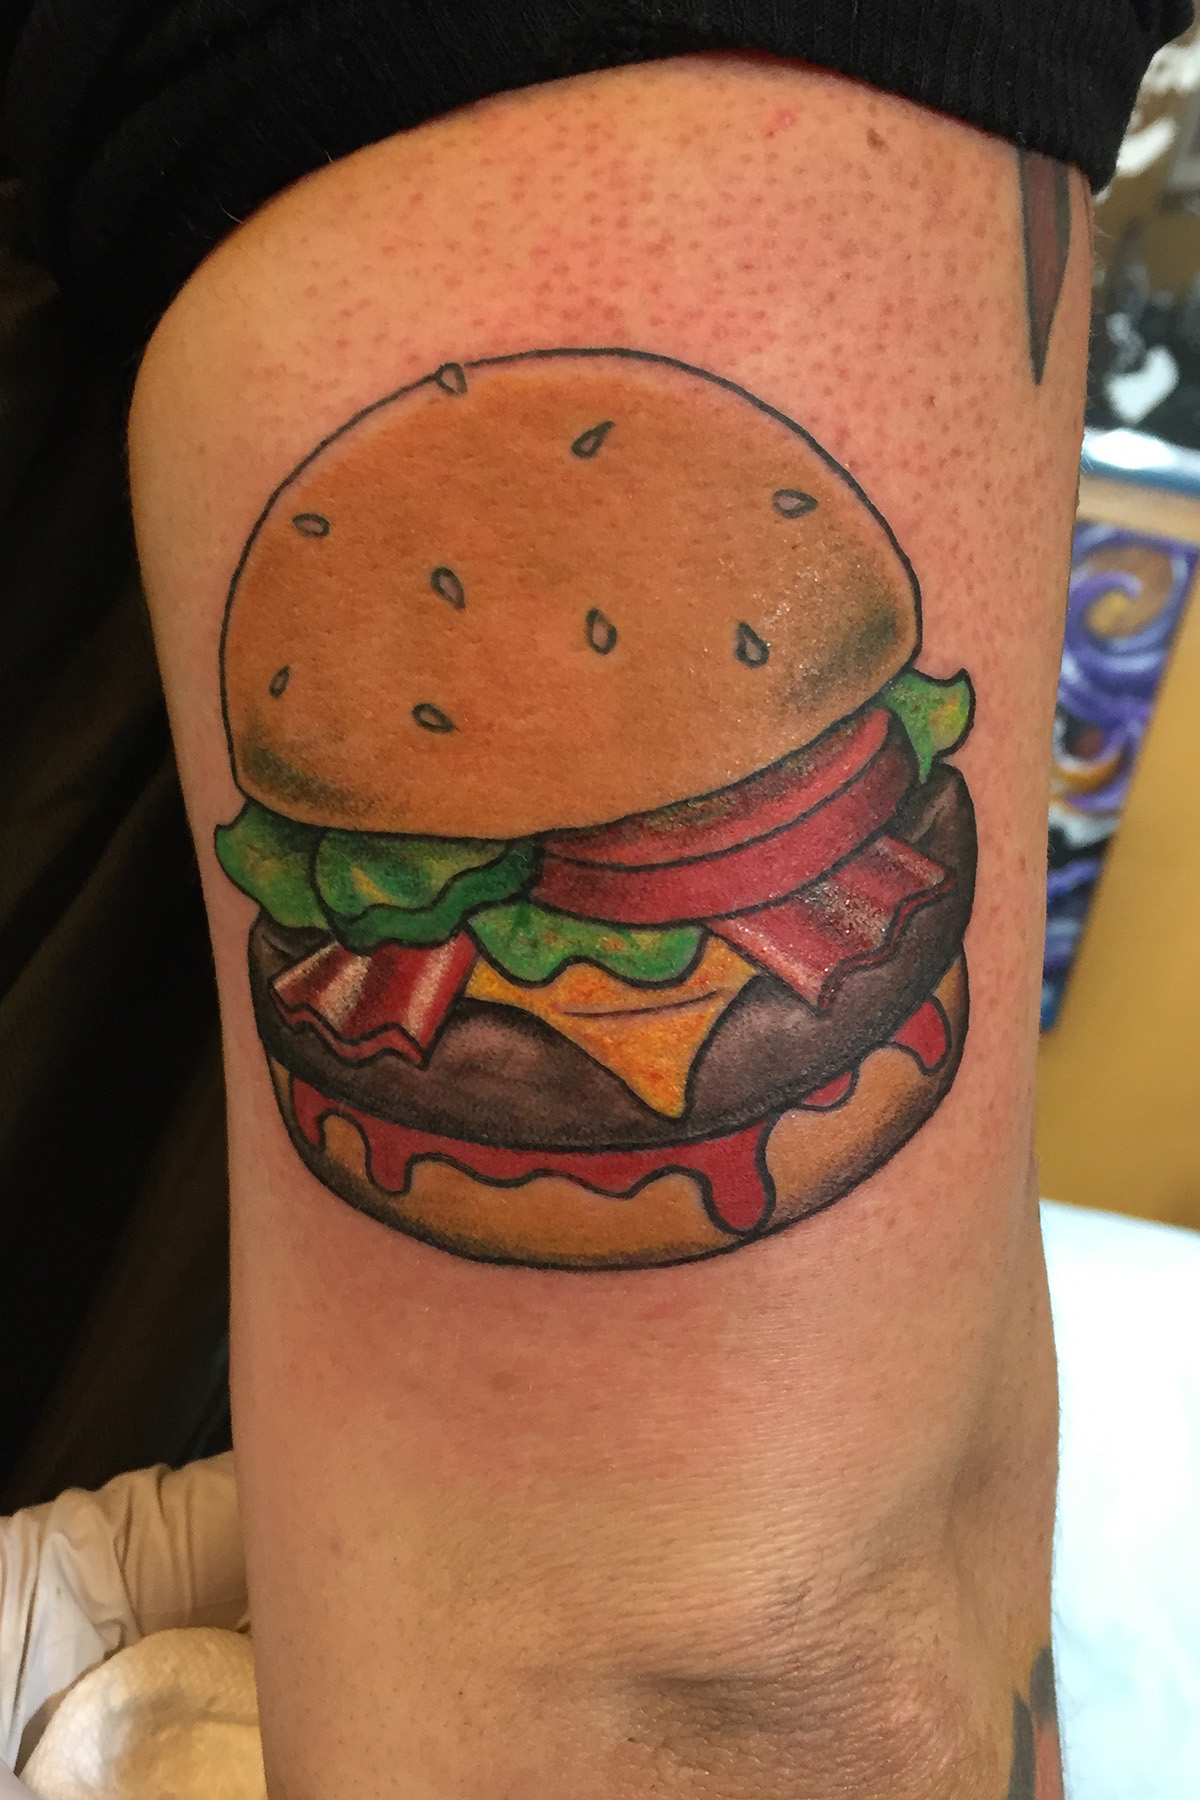 Bacon cheese burger on a sesame bun.  Half arm sleeve color tattoo.